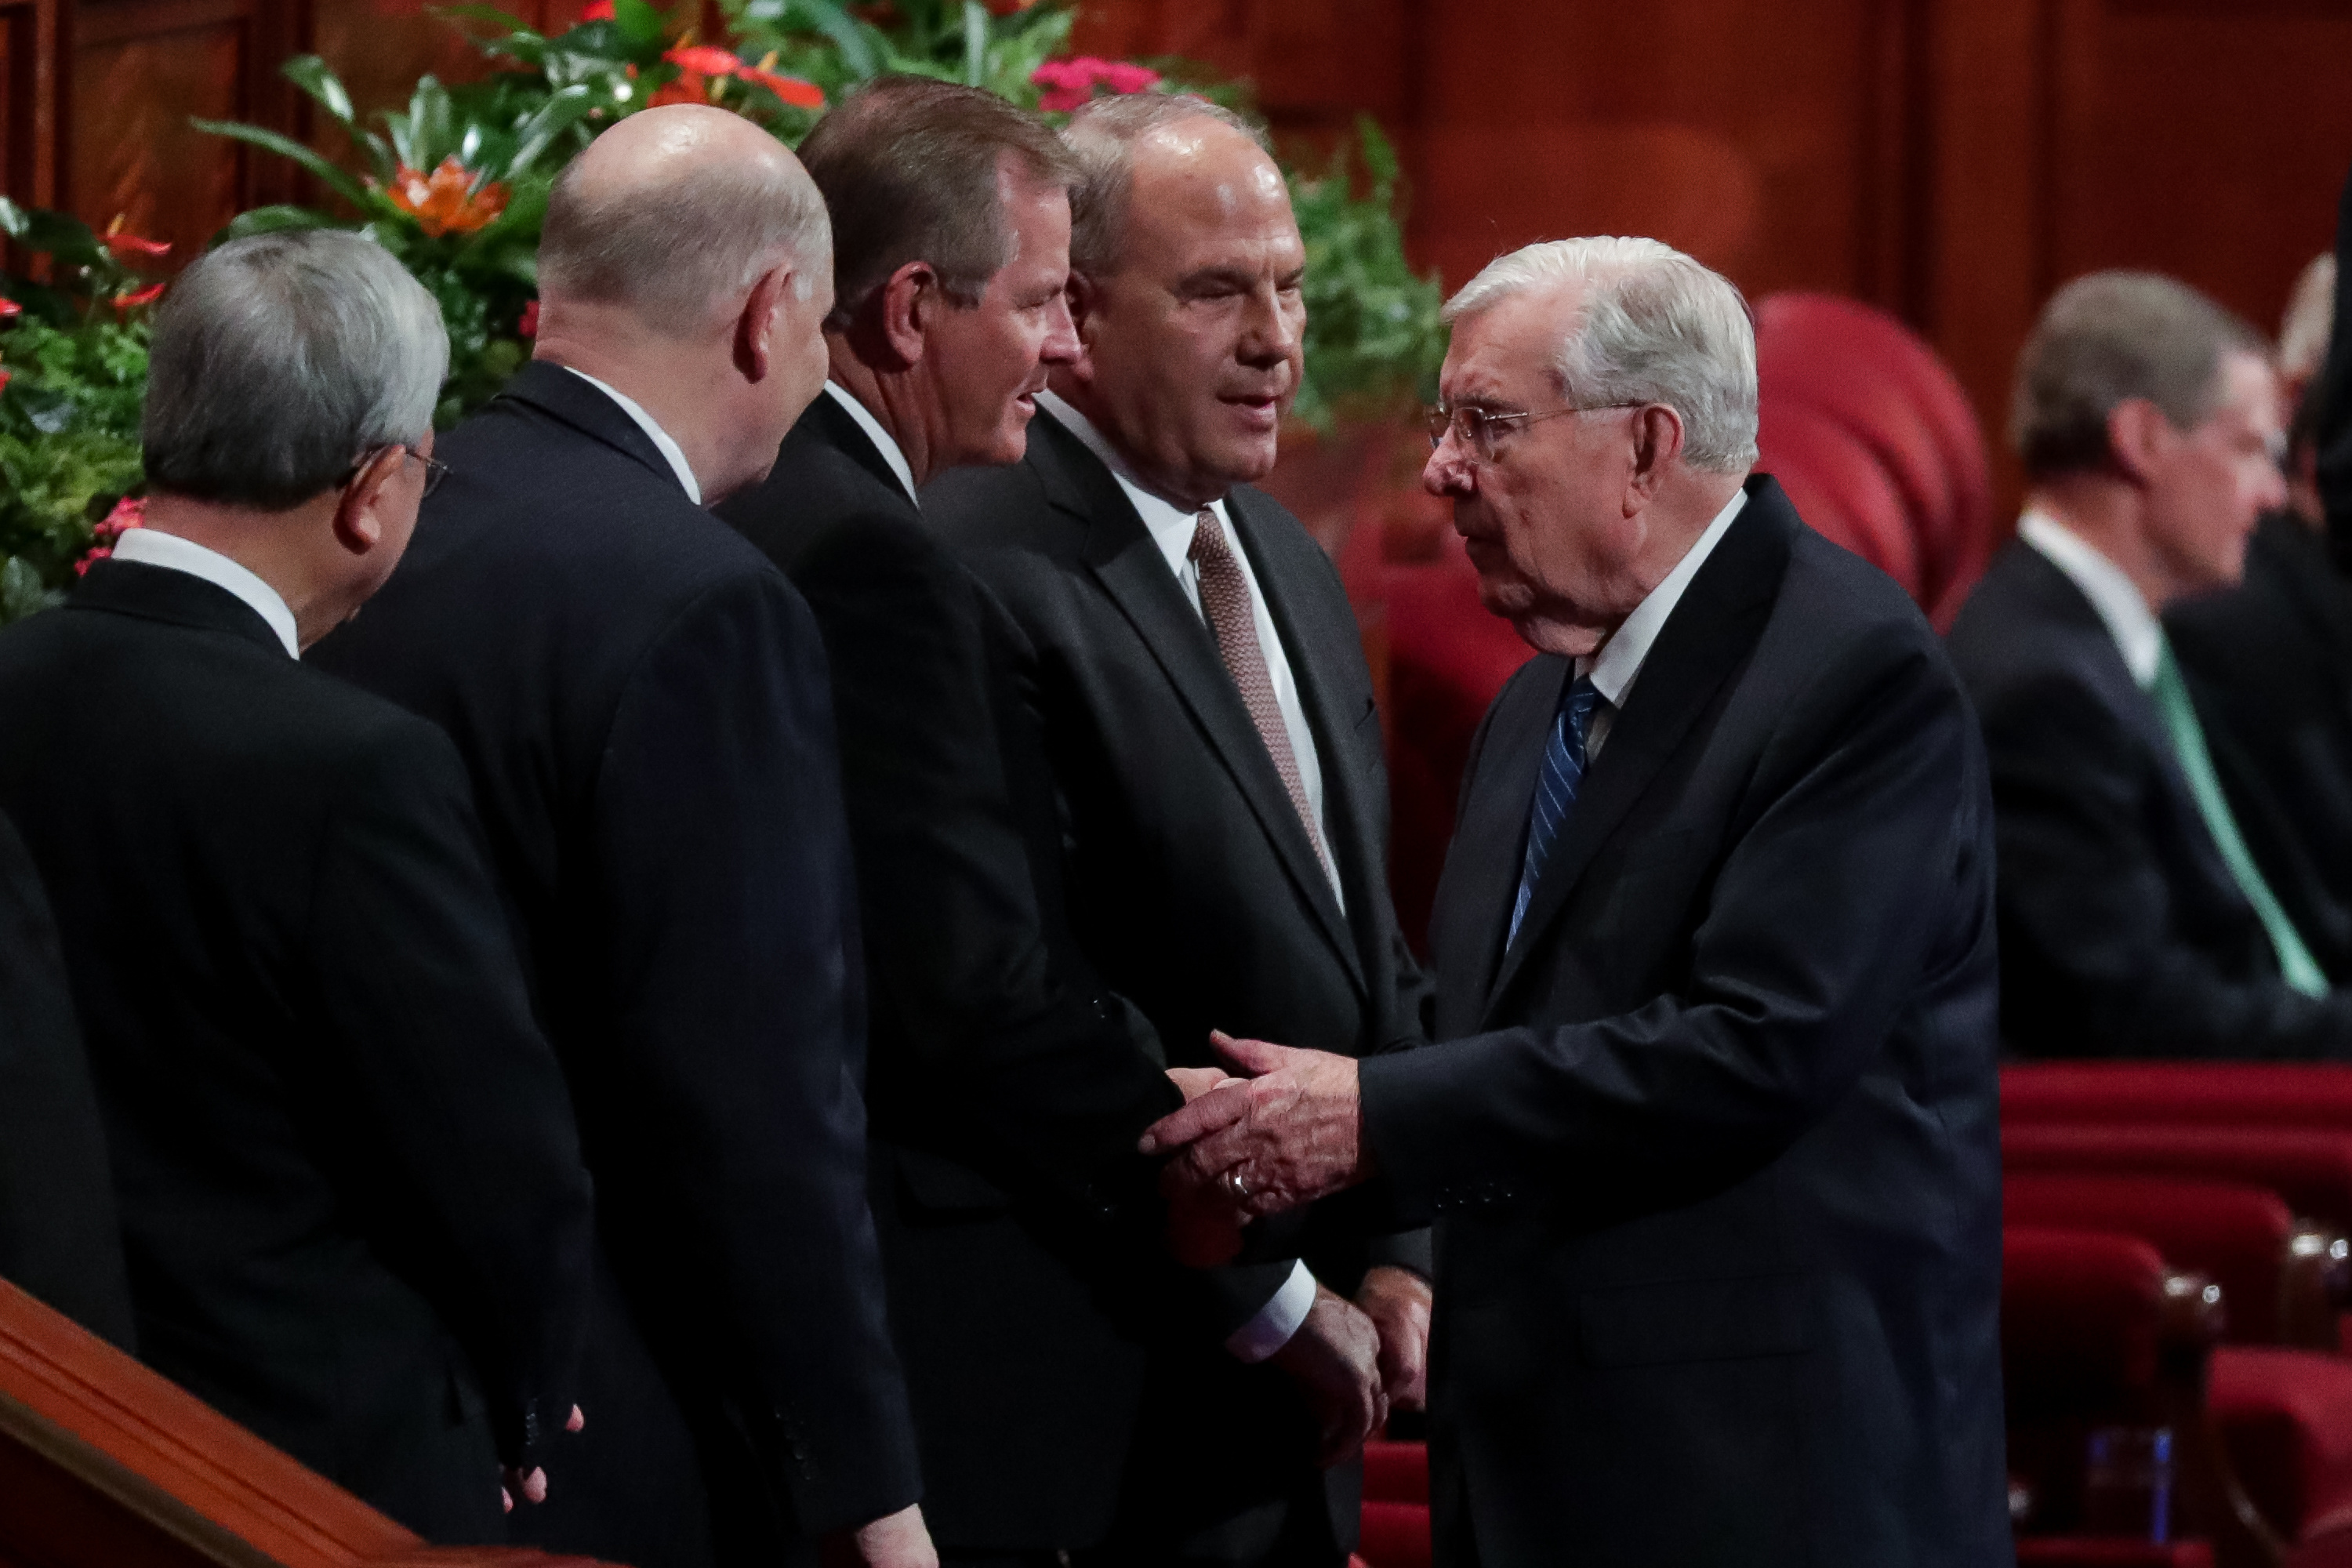 President M. Russell Ballard, acting president of the Quorum of the Twelve Apostles, greets Elder Gary E. Stevenson and other members of the Quorum of the Twelve Apostles, before the Saturday morning session of the 188th Semiannual General Conference of The Church of Jesus Christ of Latter-day Saints in the Conference Center in Salt Lake City on Saturday, Oct. 6, 2018.